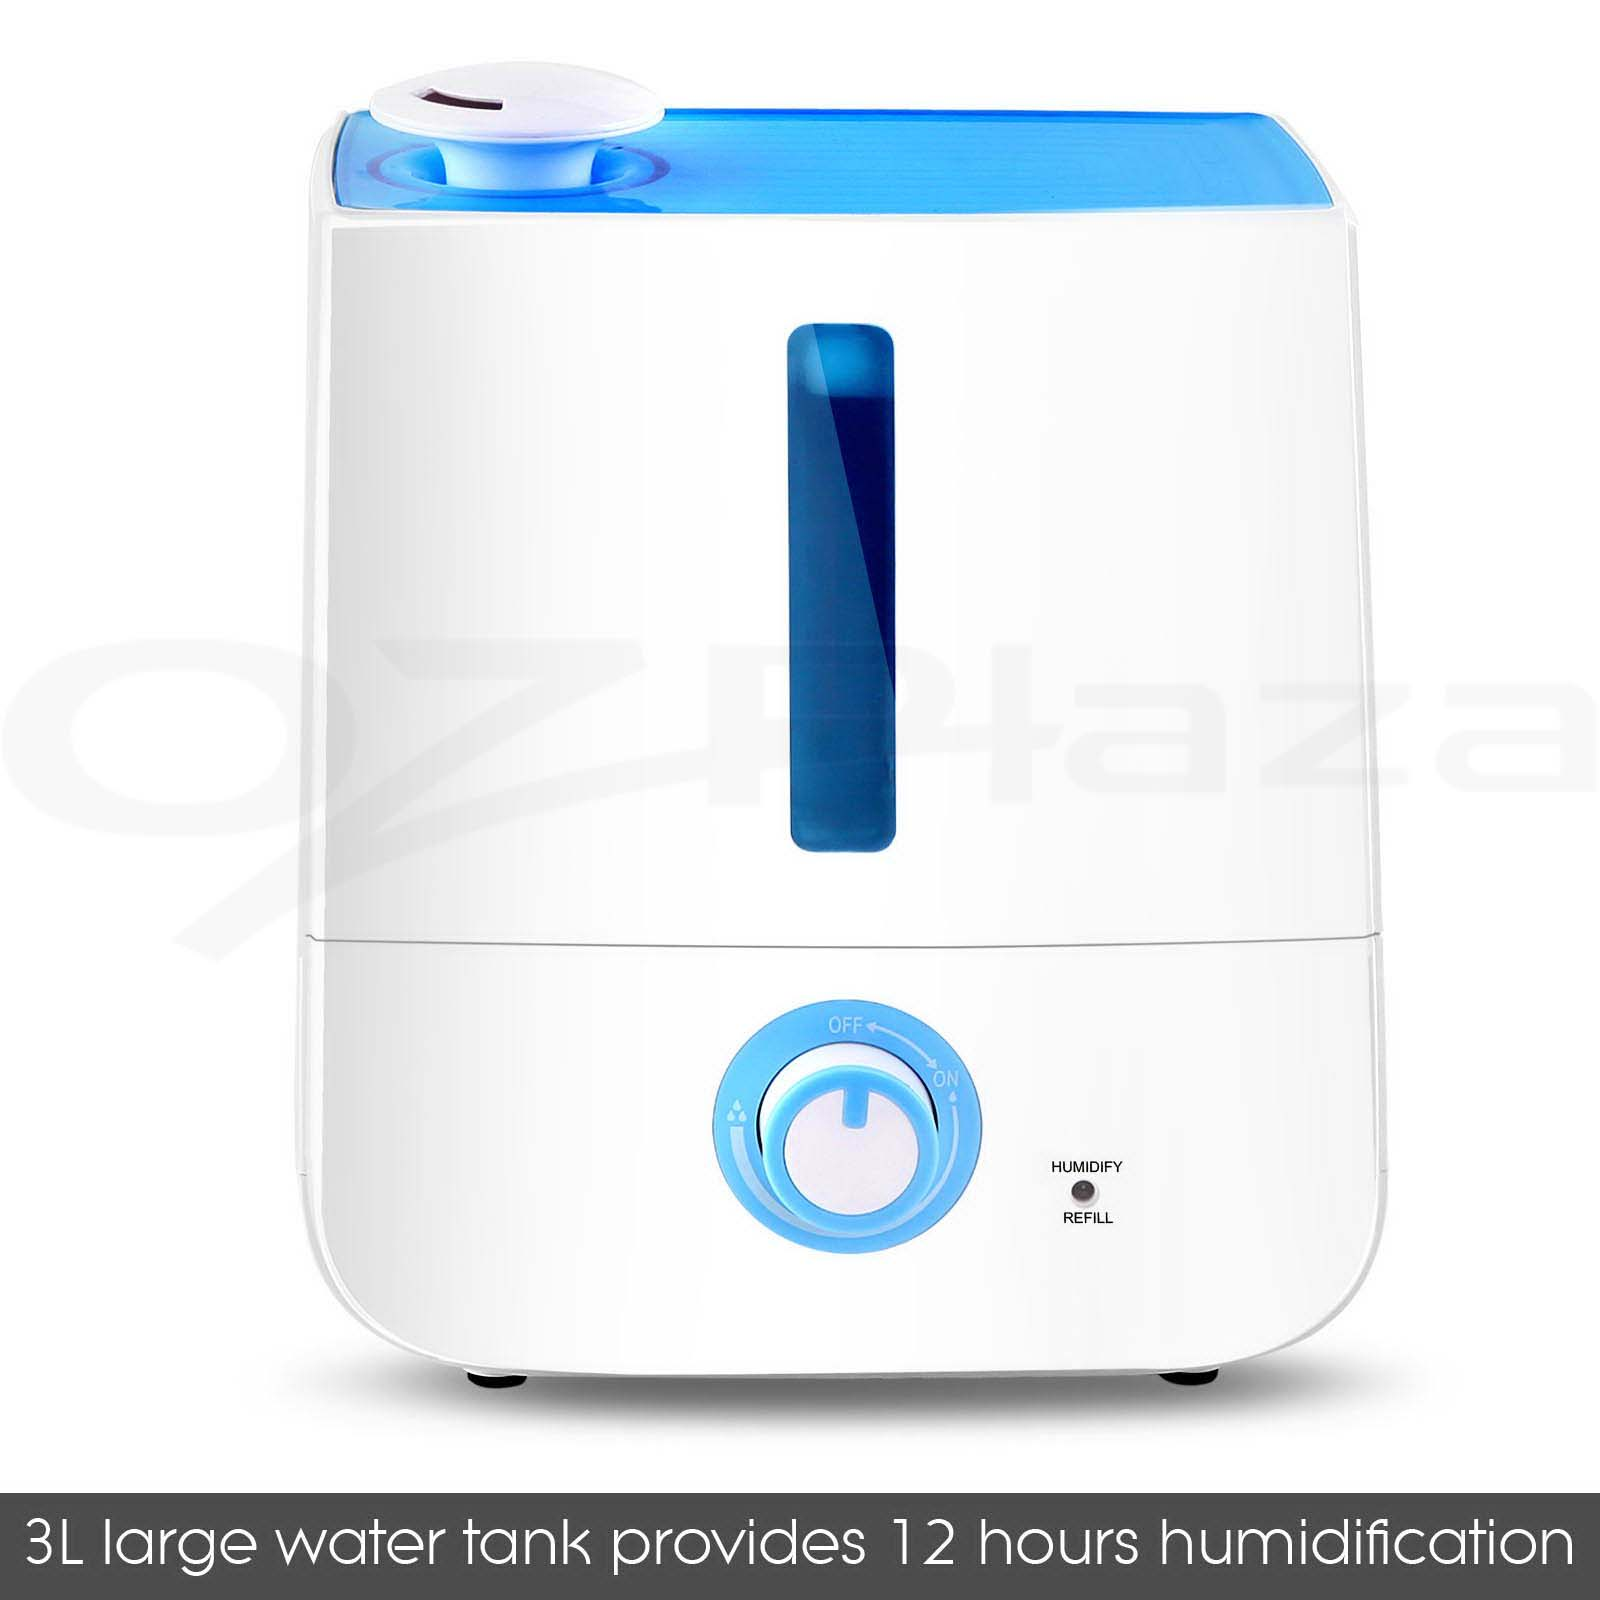 3l air humidifier ultrasonic cool mist steam nebulizer diffuser purifier ebay - Humidifier l air naturellement ...